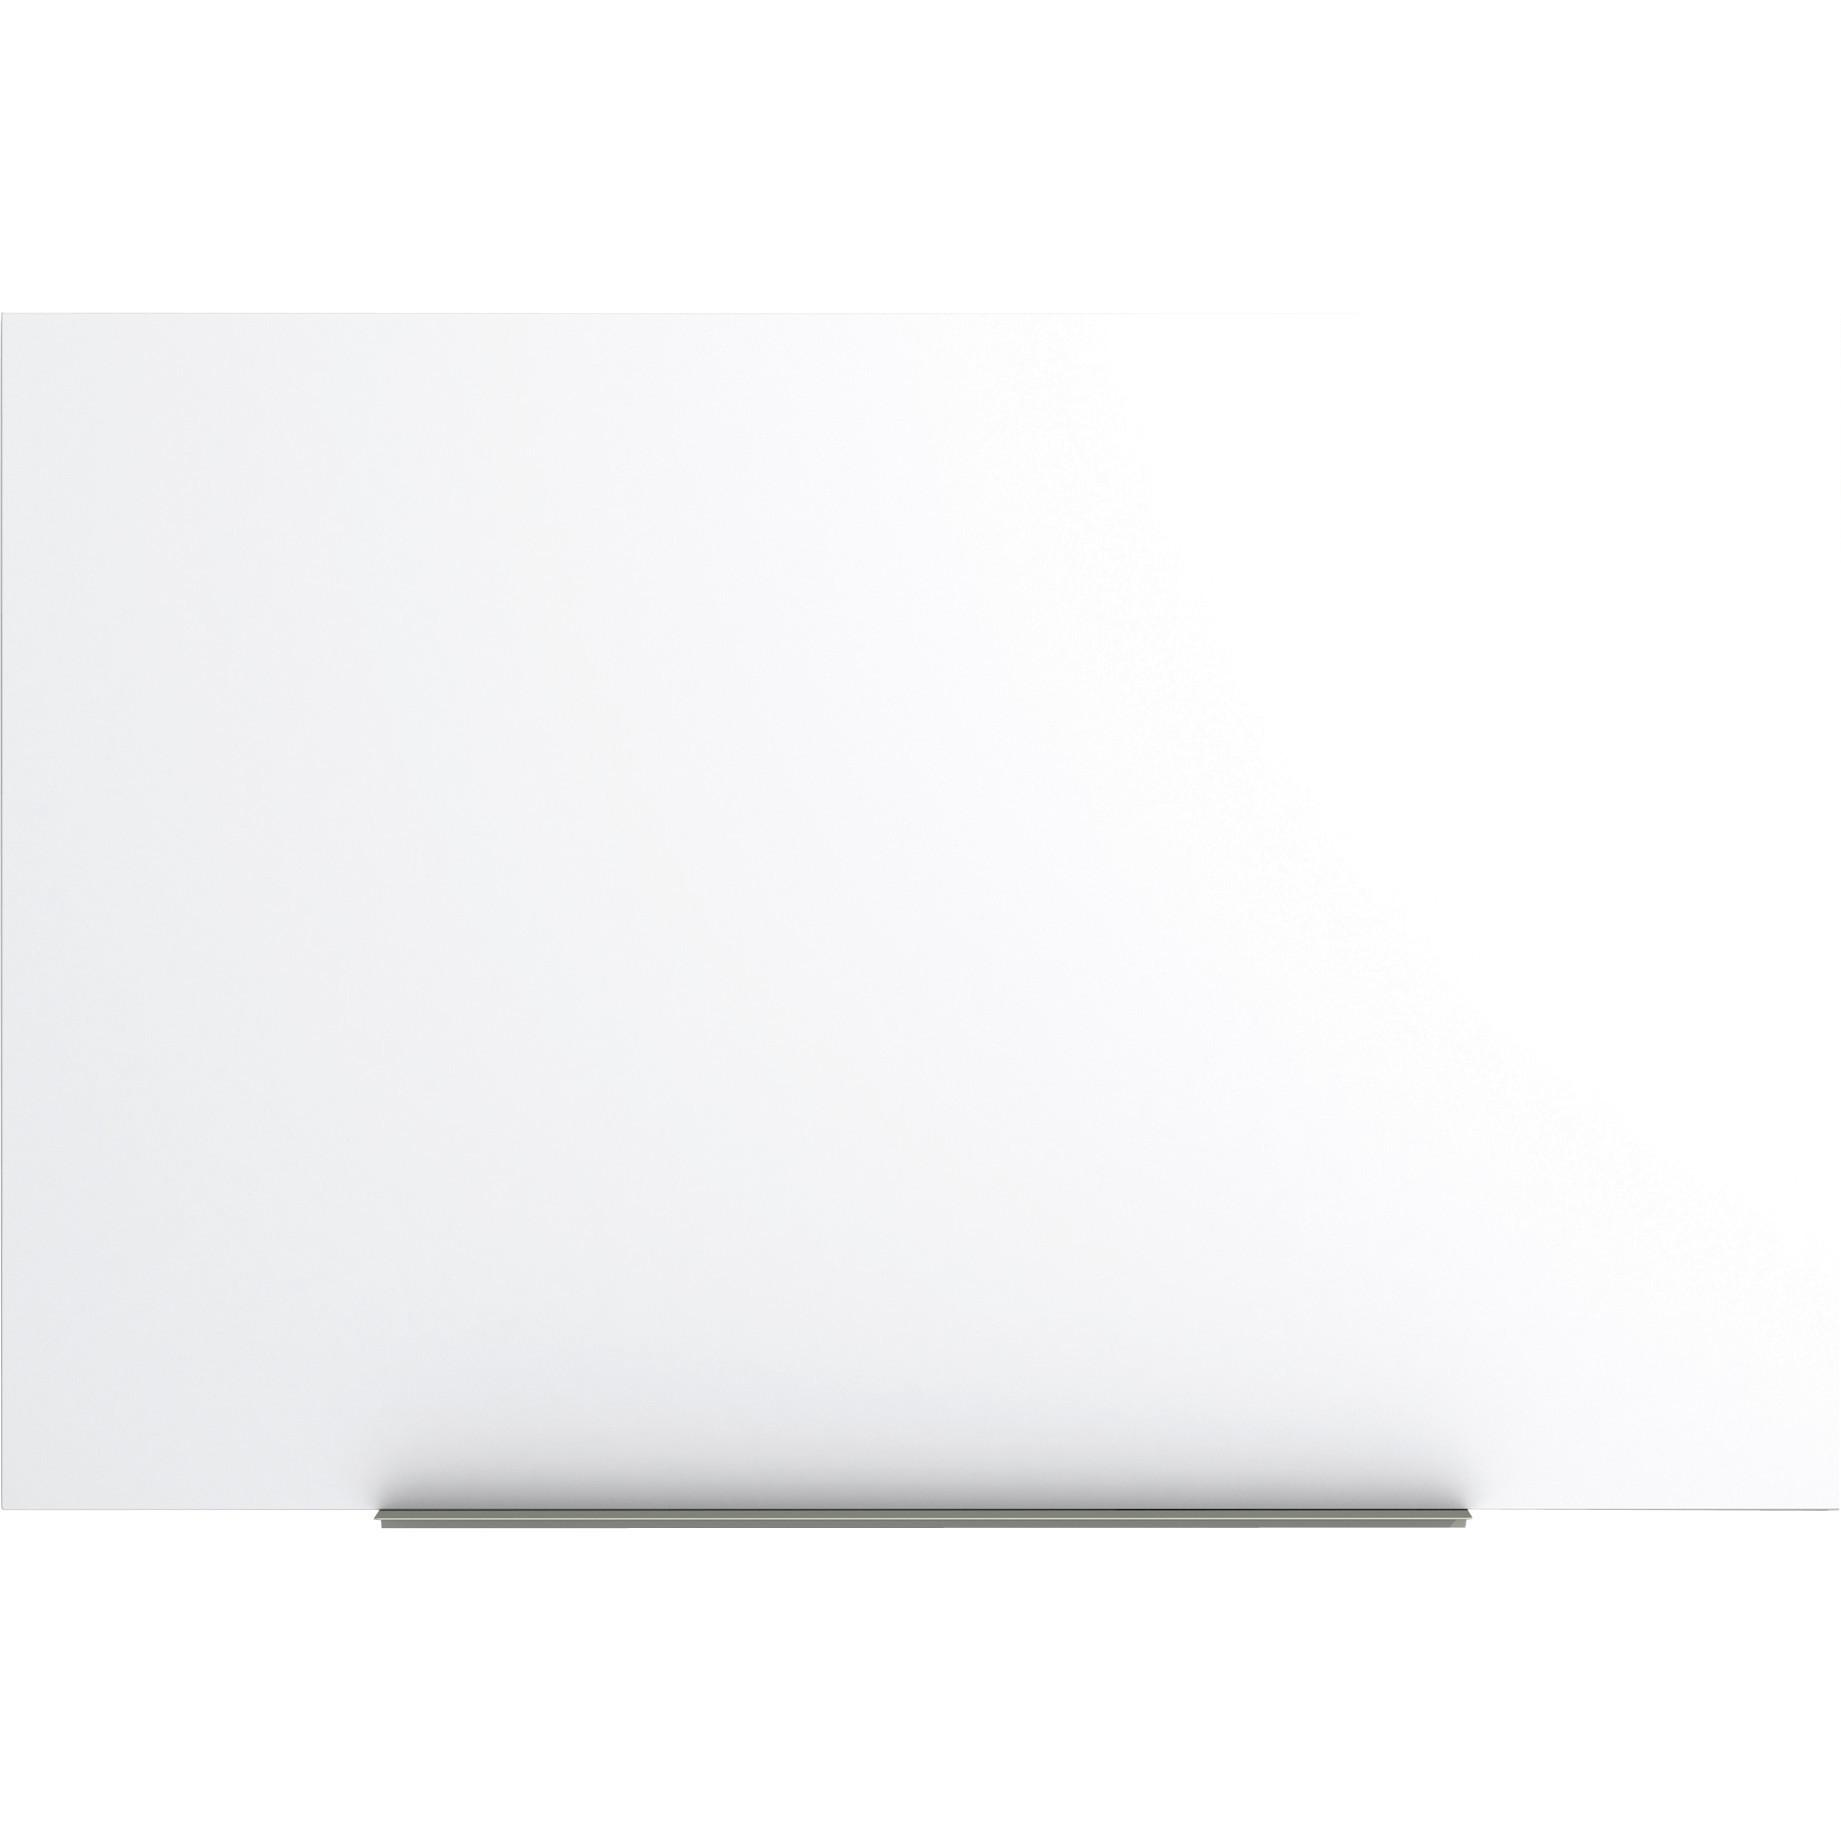 Mastervision Tile Dry Erase Panel Wall Mounted Magnetic